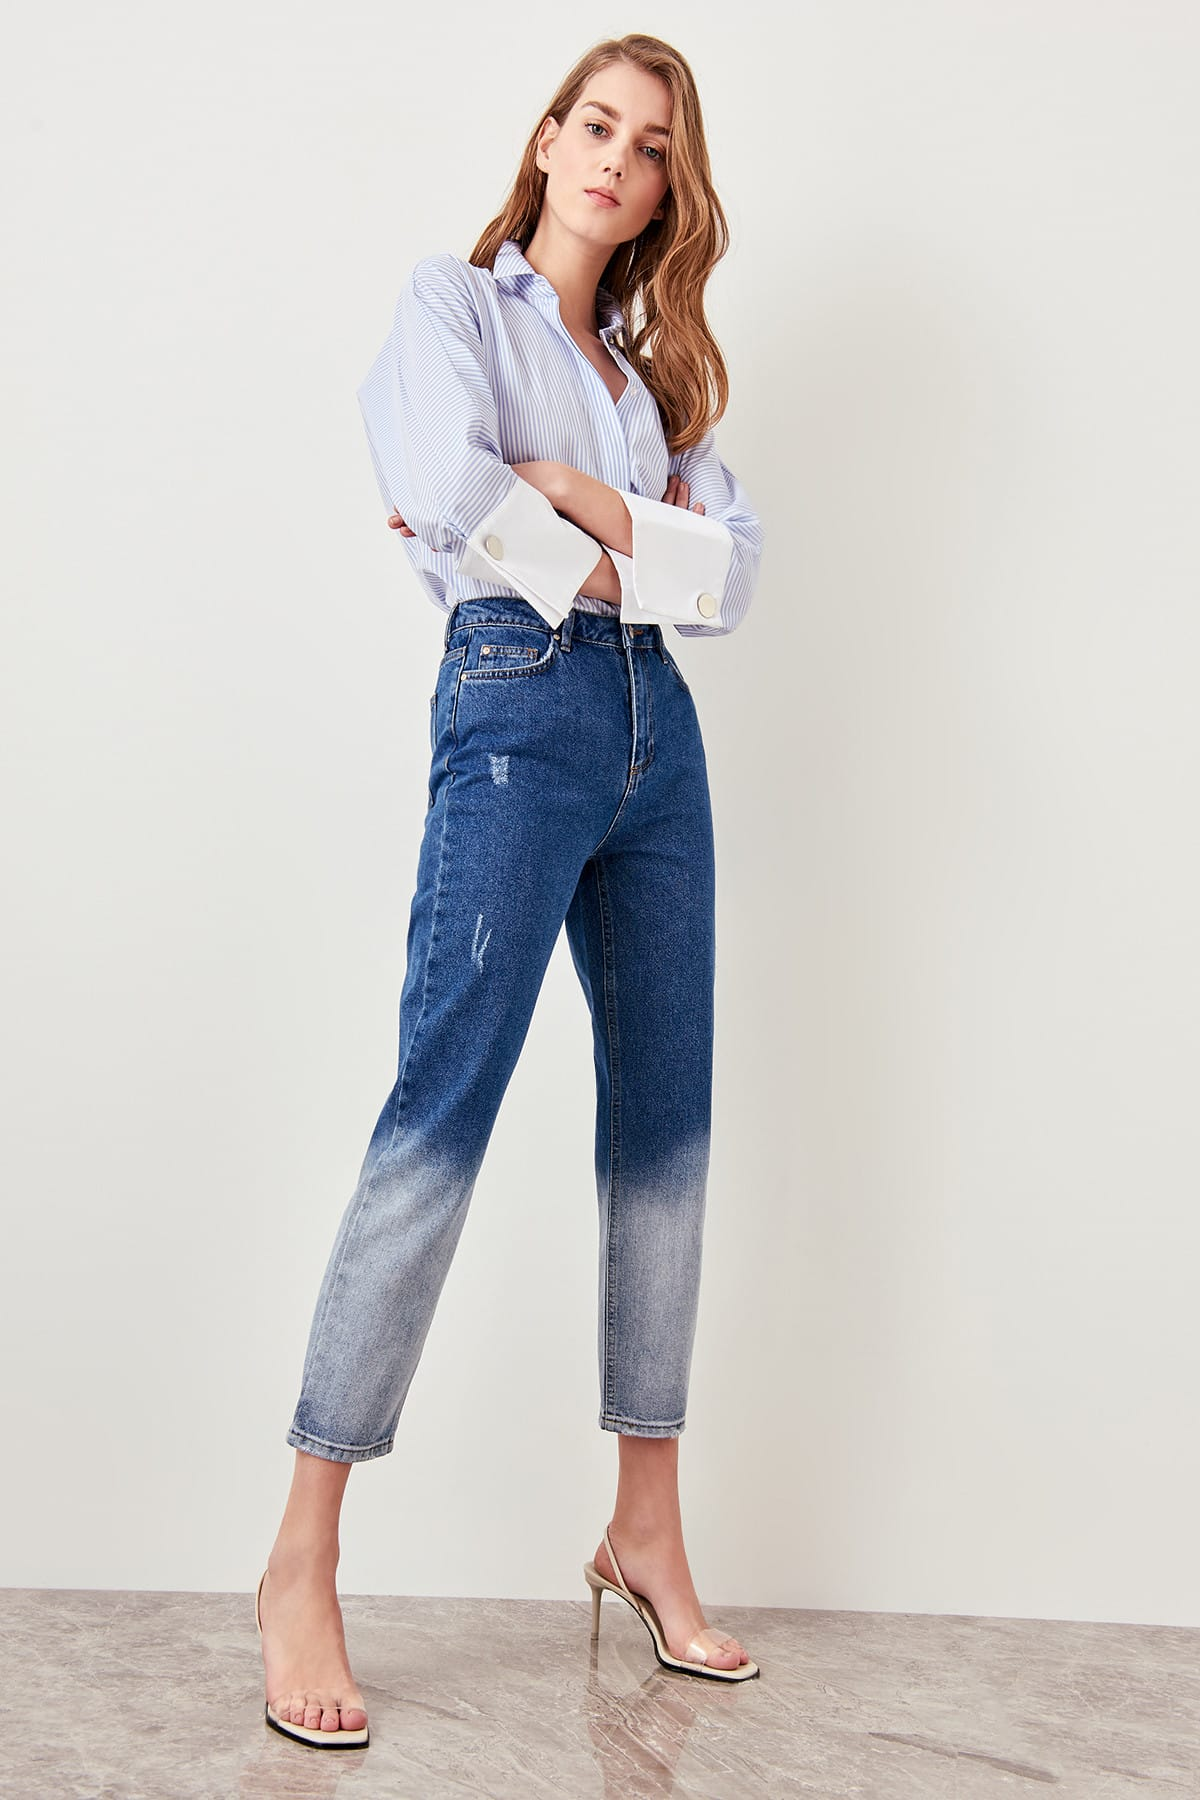 Trendyol The Mom Jeans High Waist Blue Trotting Effect Gradient